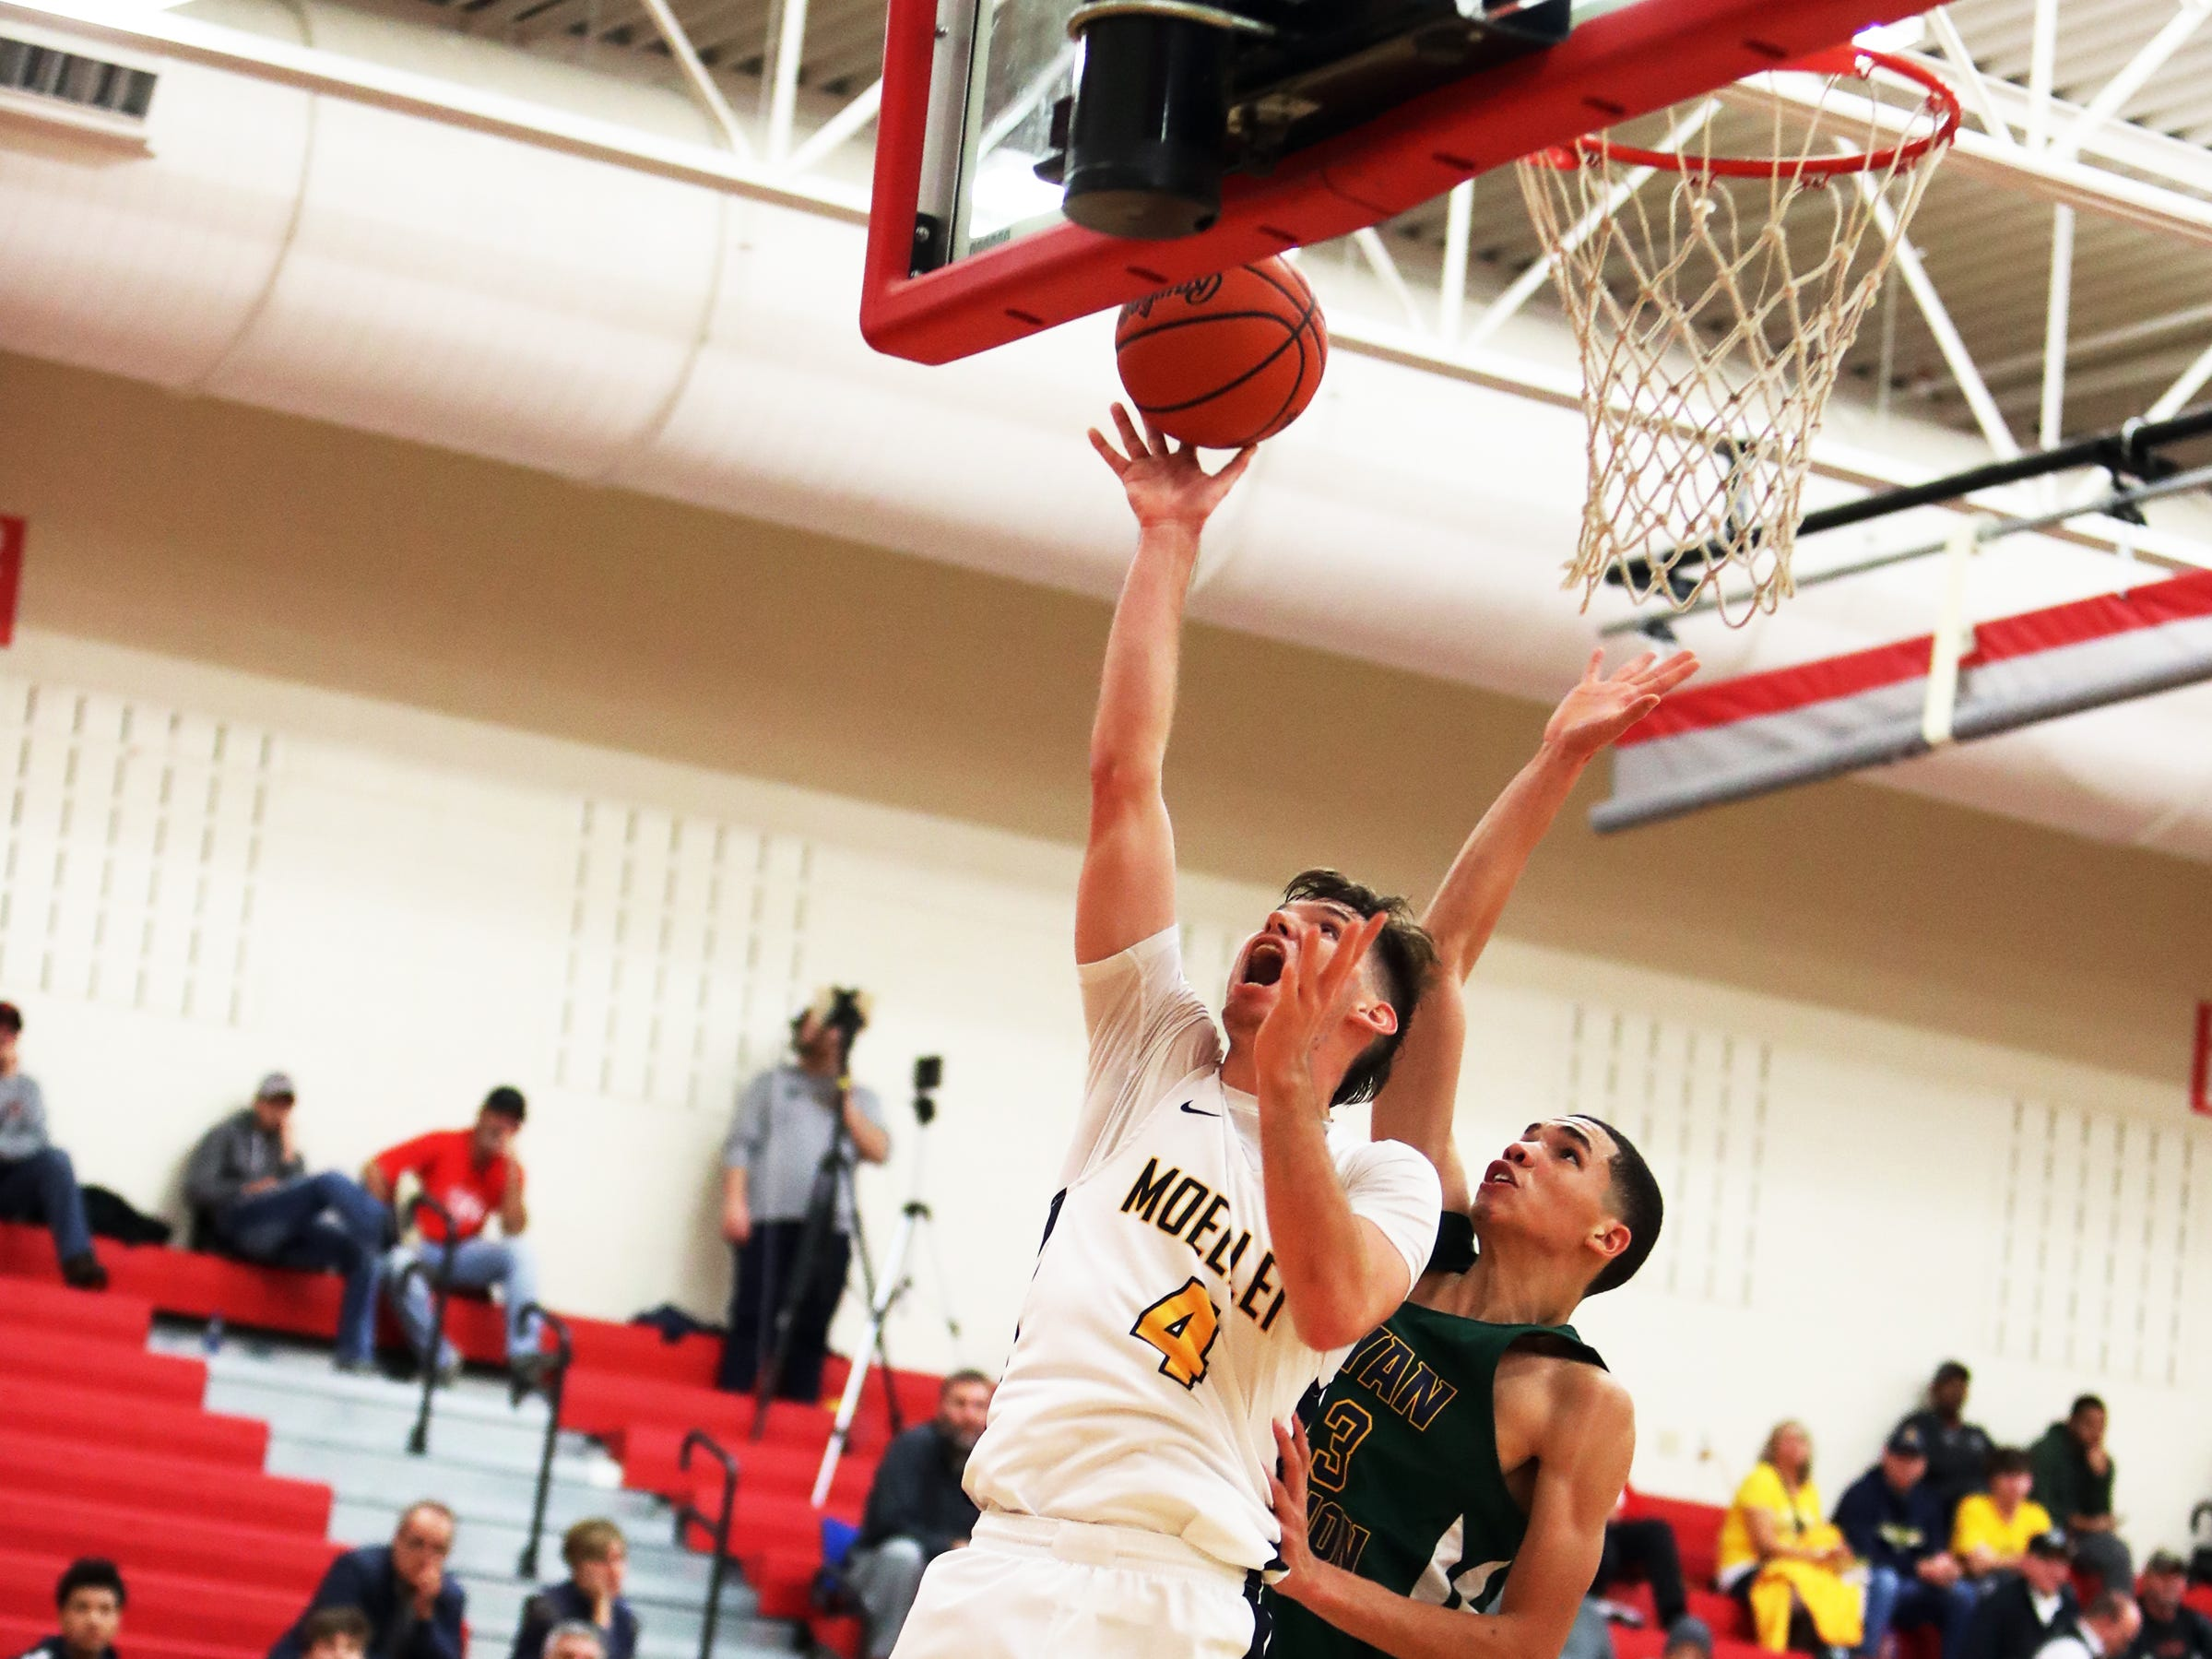 Moeller guard Michael Shipp scores on a lay up at the Ohio Valley Hoops Classic at Hillsboro High School. Moeller defeated Bryan Station 85-42.